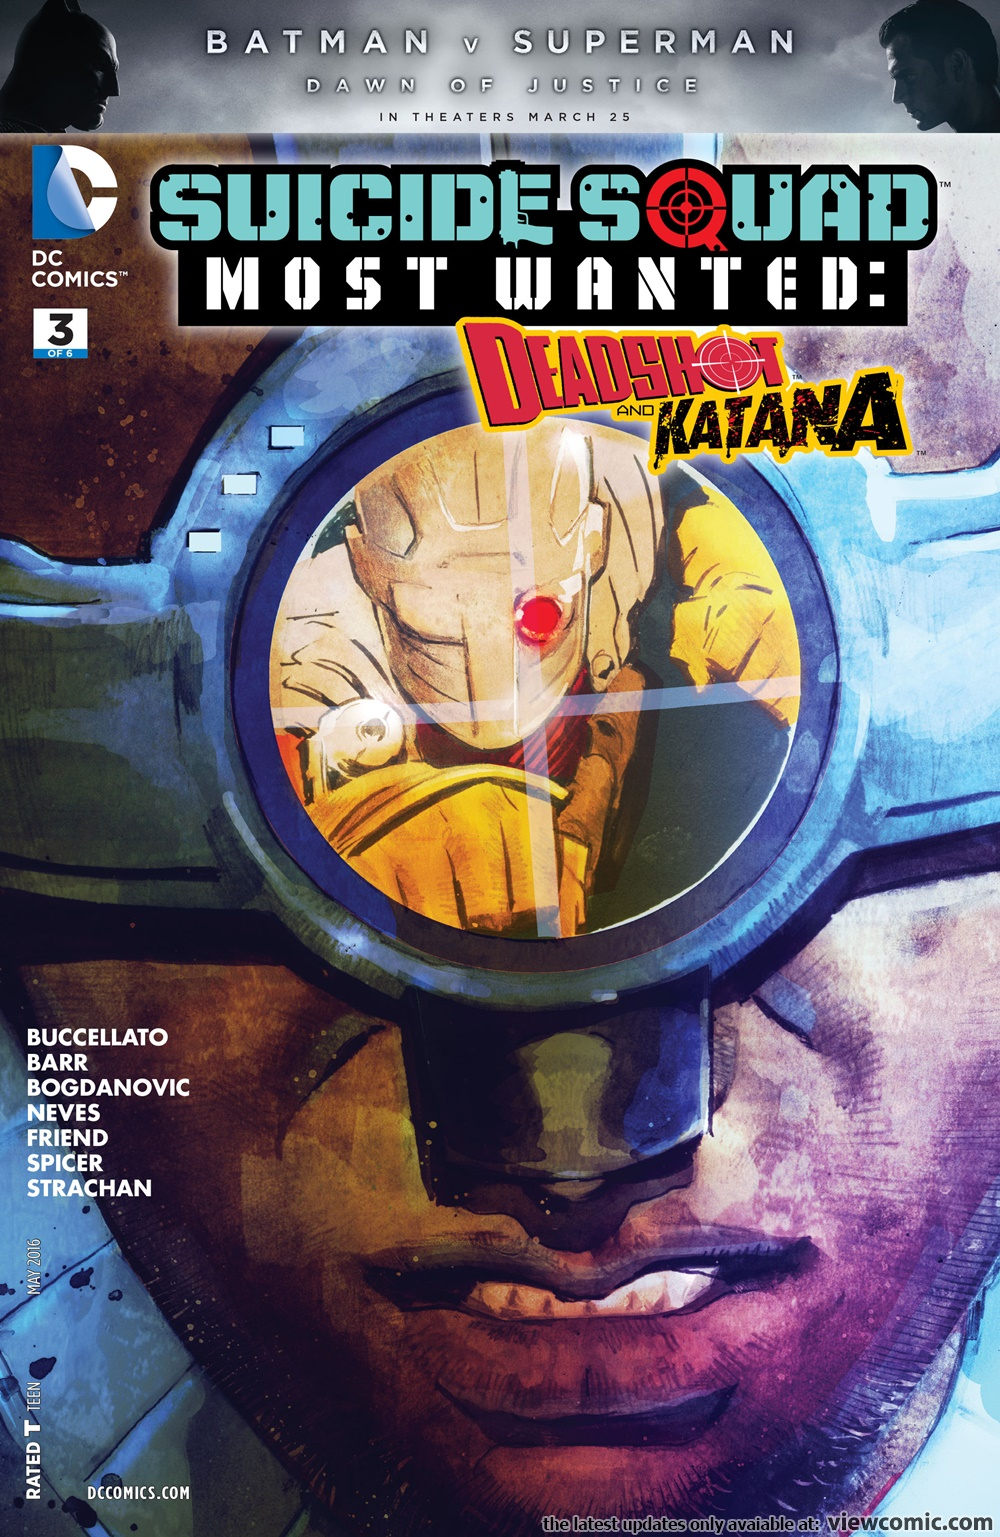 Suicide Squad Most Wanted – Deadshot and Katana 03 (of 06